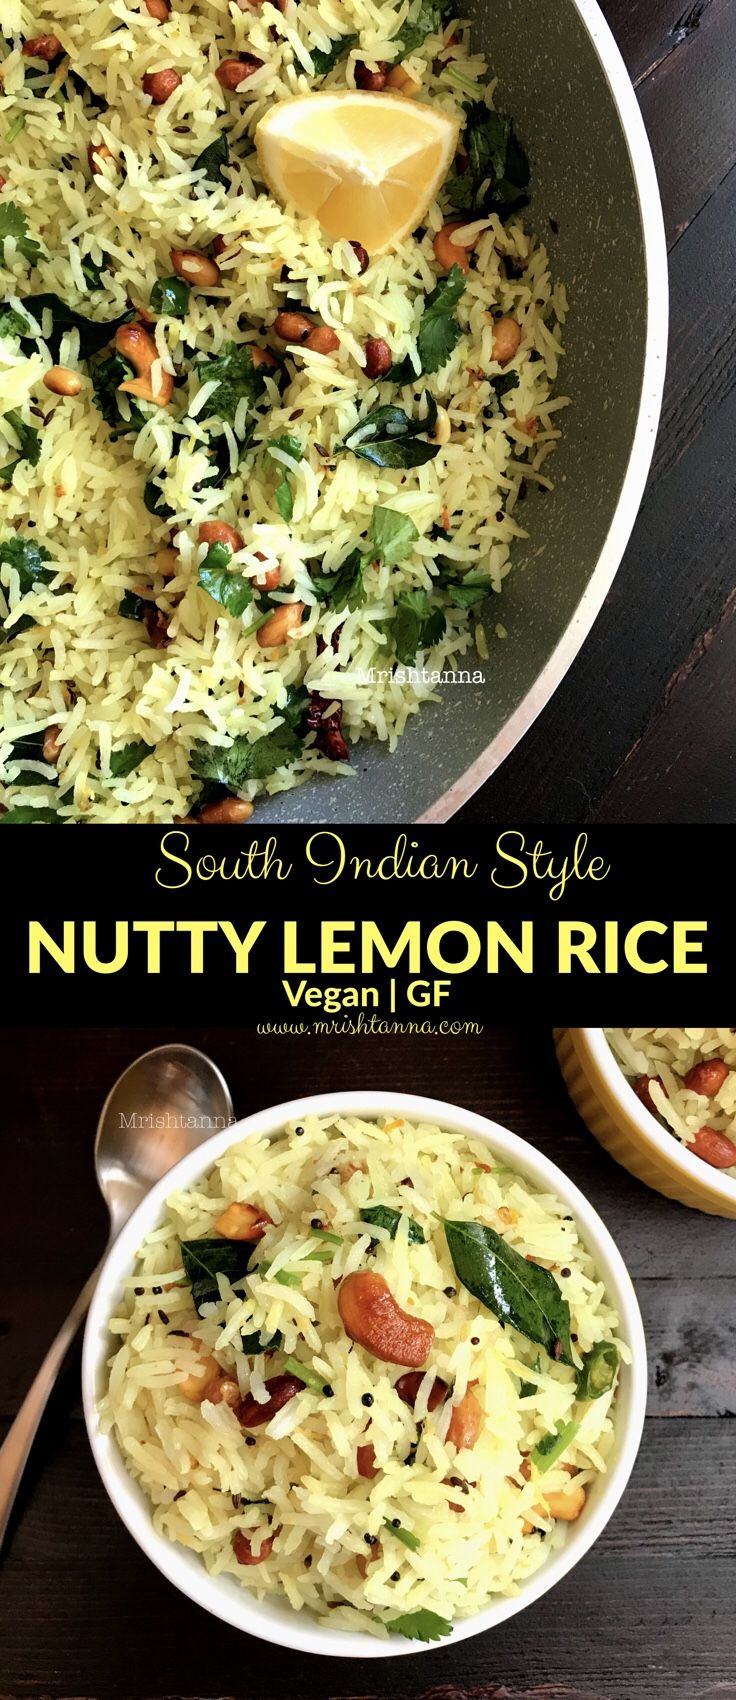 Welcome to Simple Sumptuous Cooking, a vegan cooking blog! Here's a quick recipe for Nutty Lemon Rice Recipe. #veganfood #lemonrice #recipe #rice